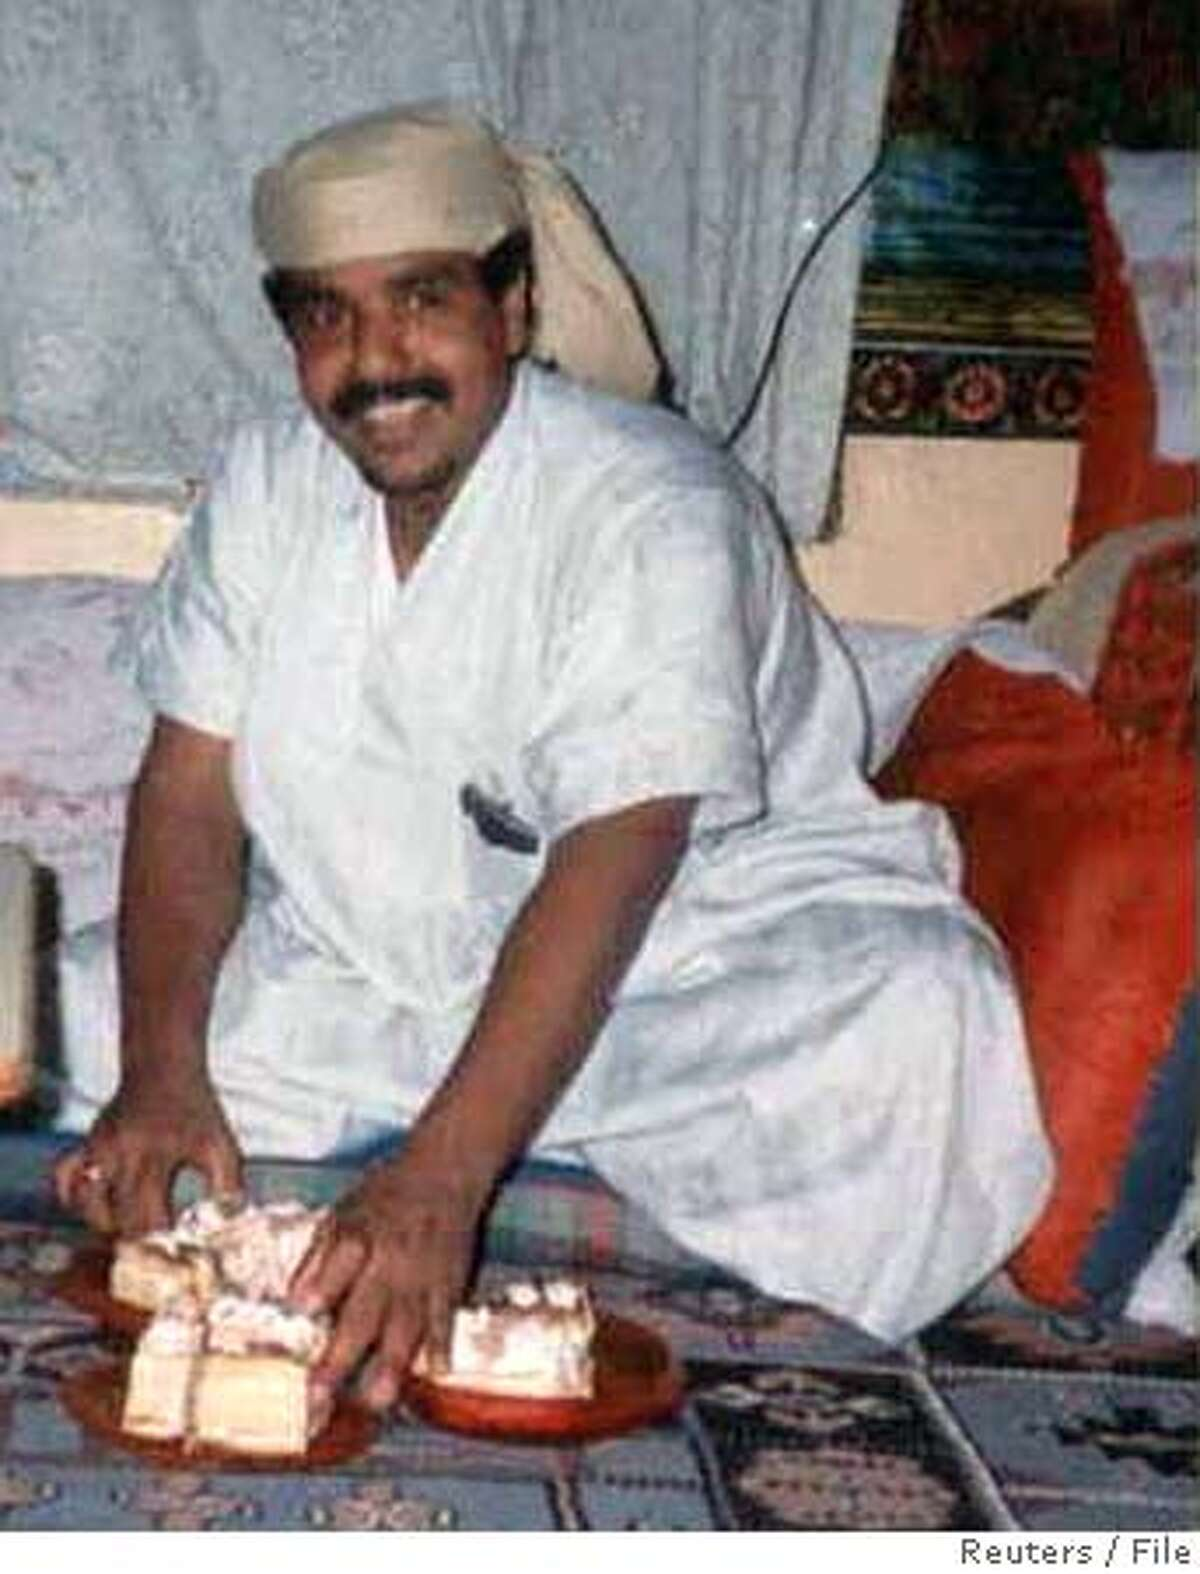 Undated photo of Salim Ahmed Hamdan, released by his attorneys August 24, 2004. Hamdan was apprehended in Afghanistan in November 2001 and has been detained at the U.S. naval base at Guantanamo Bay, Cuba since then. The United States convened its first war crimes tribunal since World War Two on August 24, 2004 and formally charged Yemeni citizen Hamdan, described as Osama bin Laden's driver, with conspiracy to commit murder as a member of al Qaeda. The United States has charged four of the 585 al Qaeda or Taliban suspects at Guantanamo with conspiracy to commit war crimes, a charge that carries a maximum penalty of life in prison. Hamdan was the first to go before the controversial military tribunals authorized by President George W. Bush for trying foreign militants after the Sept. 11, 2001, attacks on New York and Washington, in which about 3,000 people were killed. REUTERS/Handout Ran on: 08-25-2004 Salim Ahmed Hamdan admits he was a driver for Osama bin Laden but denies ties to terror. Ran on: 08-25-2004 Salim Ahmed Hamdan admits he was a driver for Osama bin Laden but denies ties to terror. Ran on: 01-19-2005 Salim Ahmed Hamdan, caught in Afghanistan in 2001, has been held at the U.S. Navy base in Cuba ever since. Ran on: 01-19-2005 Salim Ahmed Hamdan, caught in Afghanistan in 2001, has been held at the U.S. Navy base in Cuba ever since. Ran on: 07-16-2005 Salim Ahmed Hamdan 0